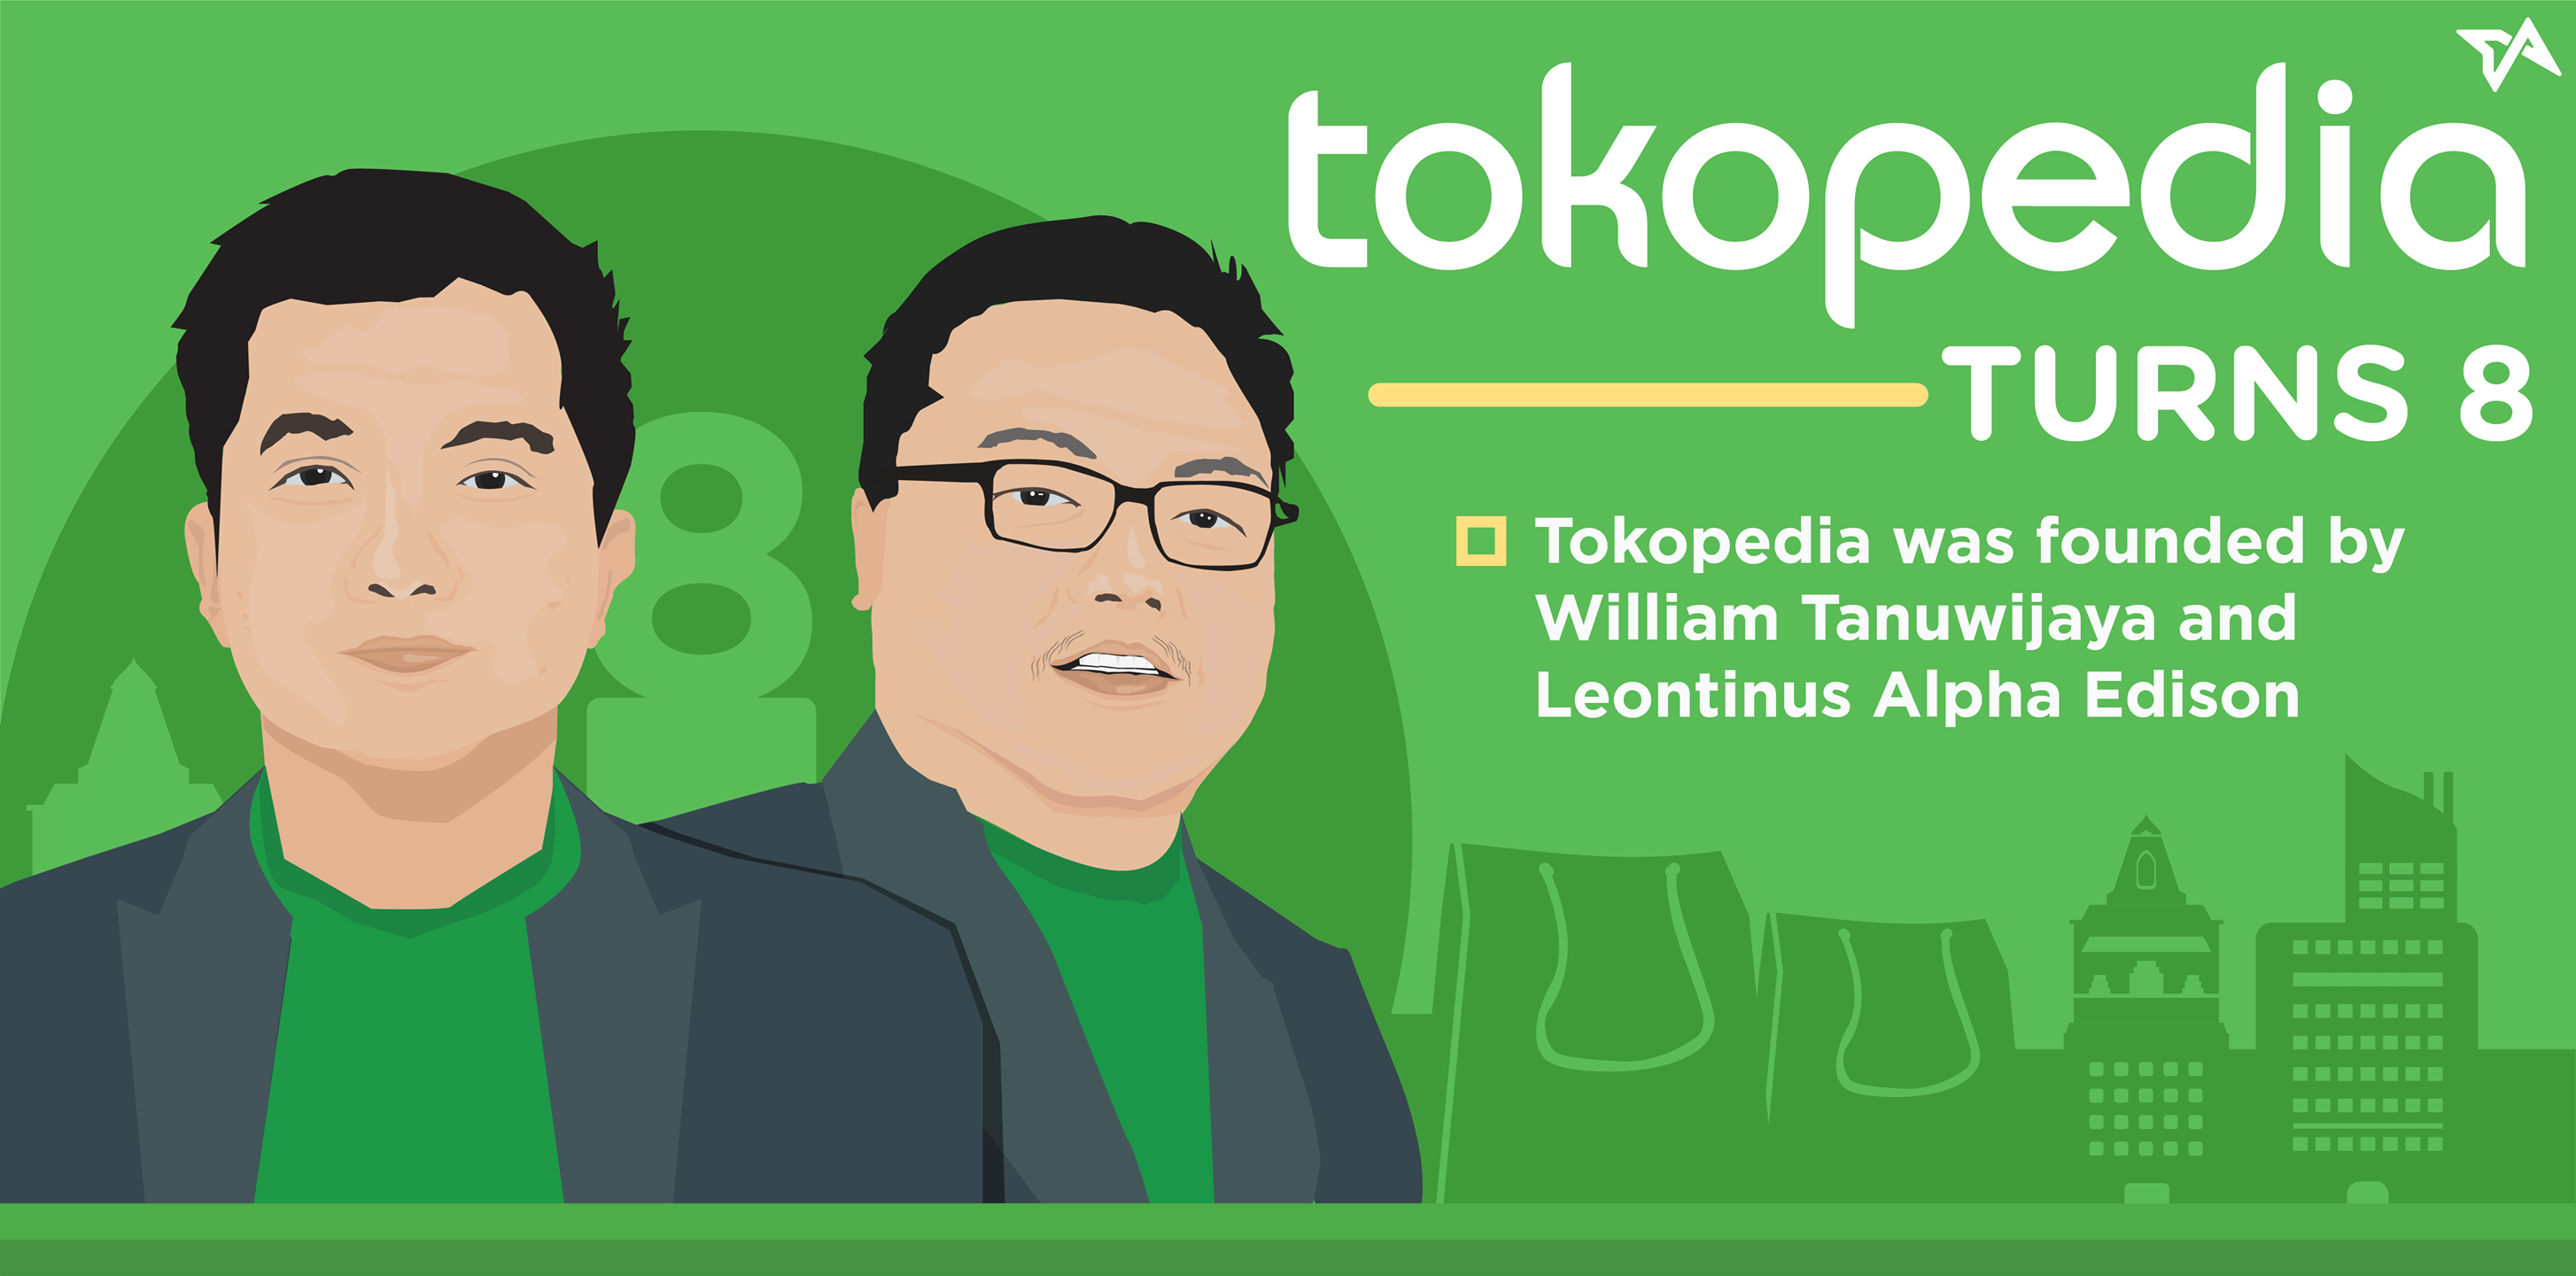 Tokopedia turns 8